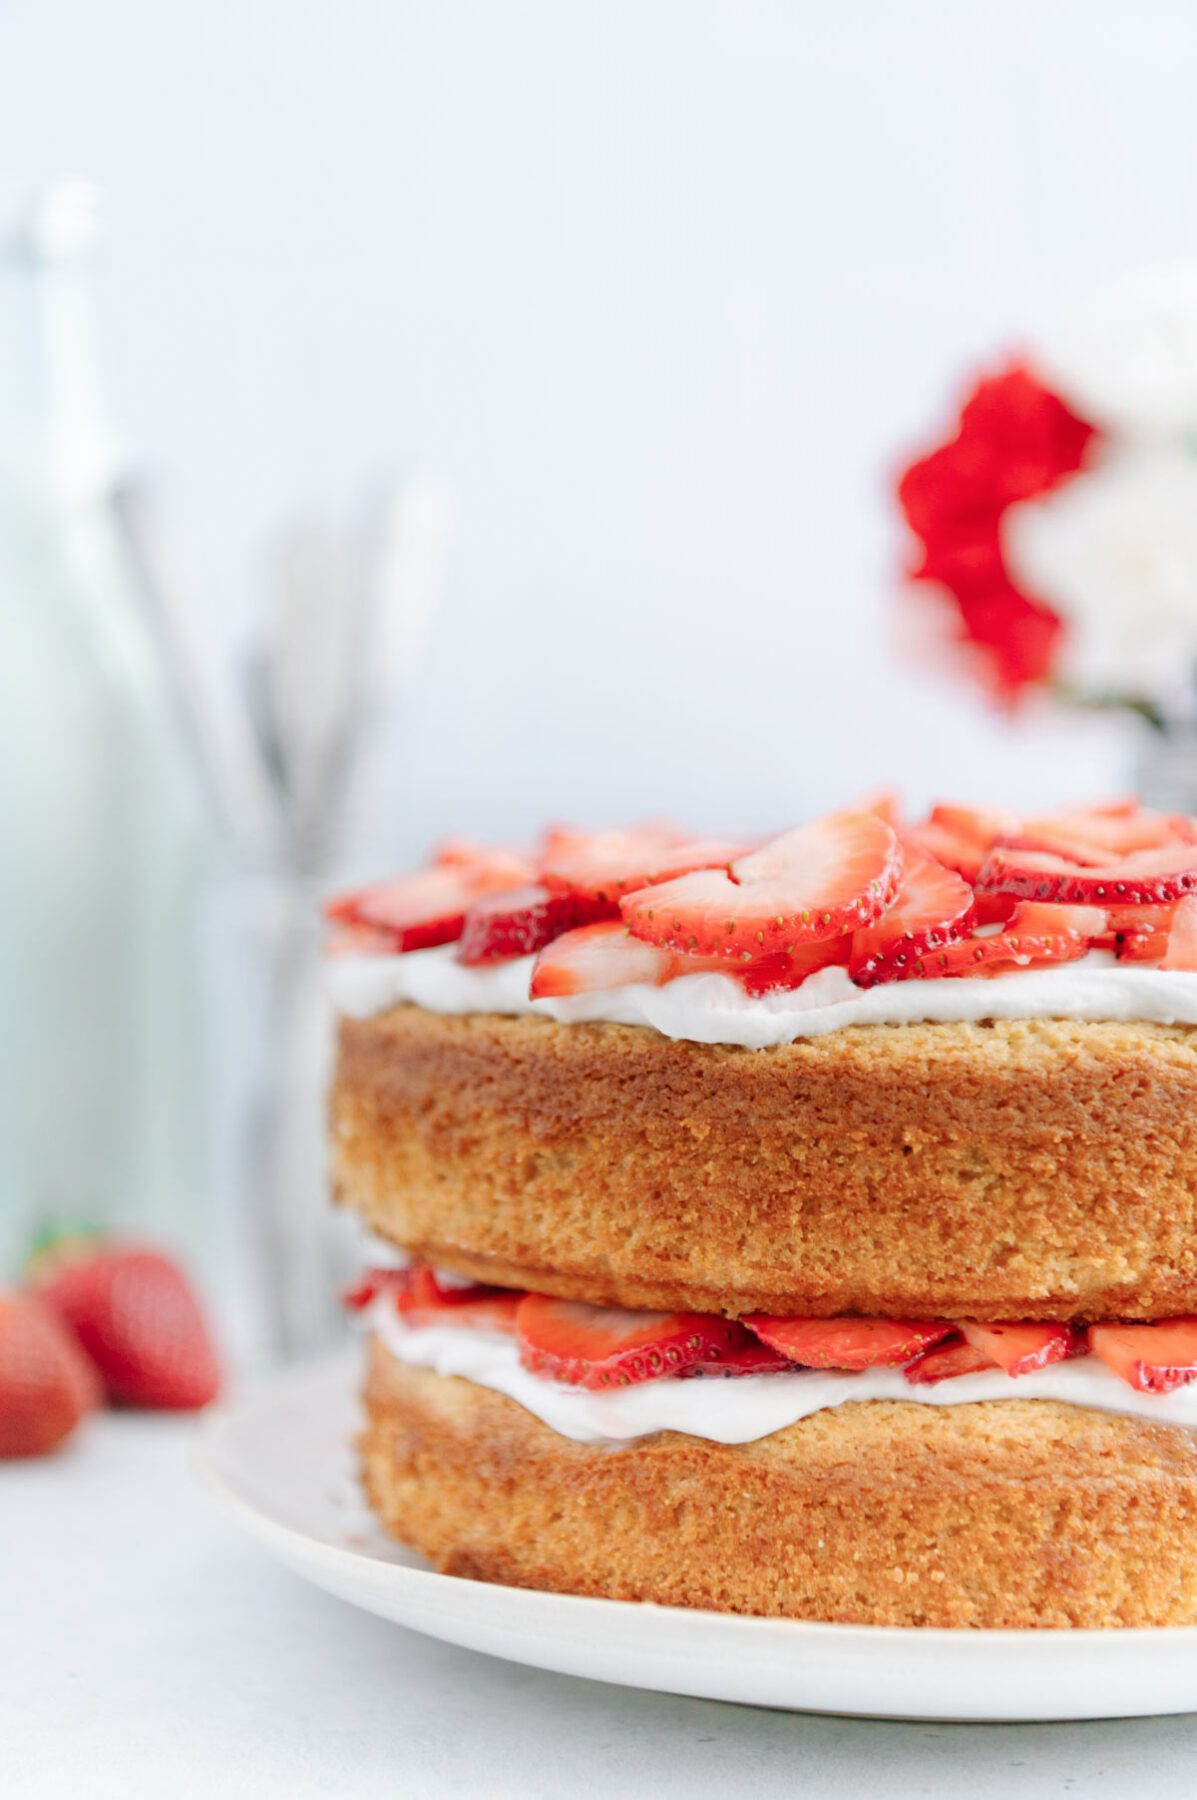 Vegan Paleo Strawberry Shortcake Cake